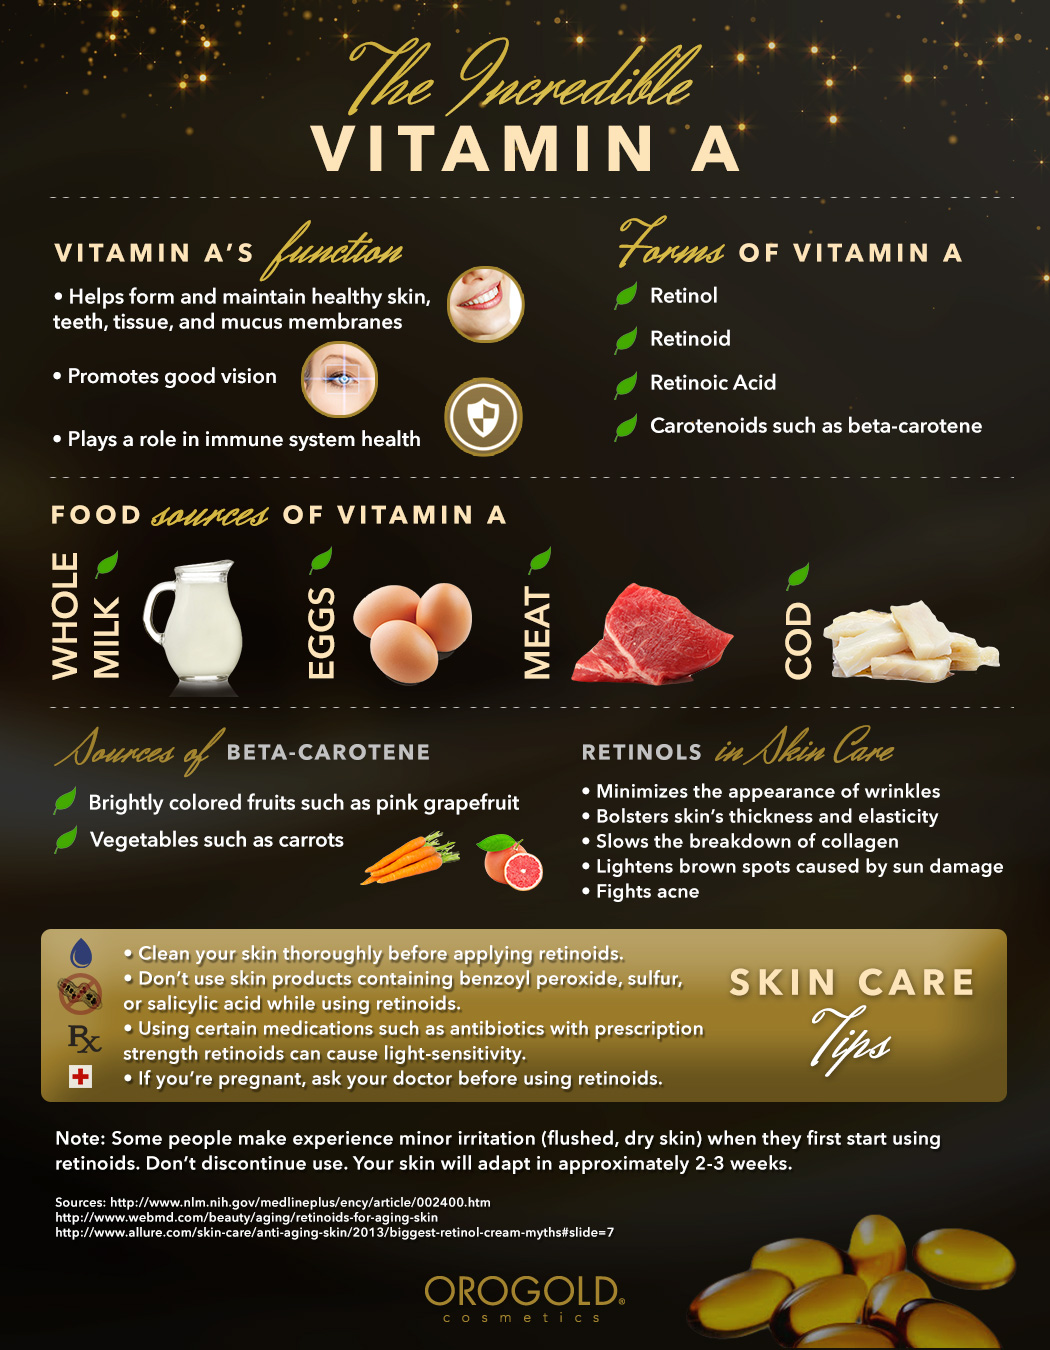 OROGOLD's vitamin A infographic